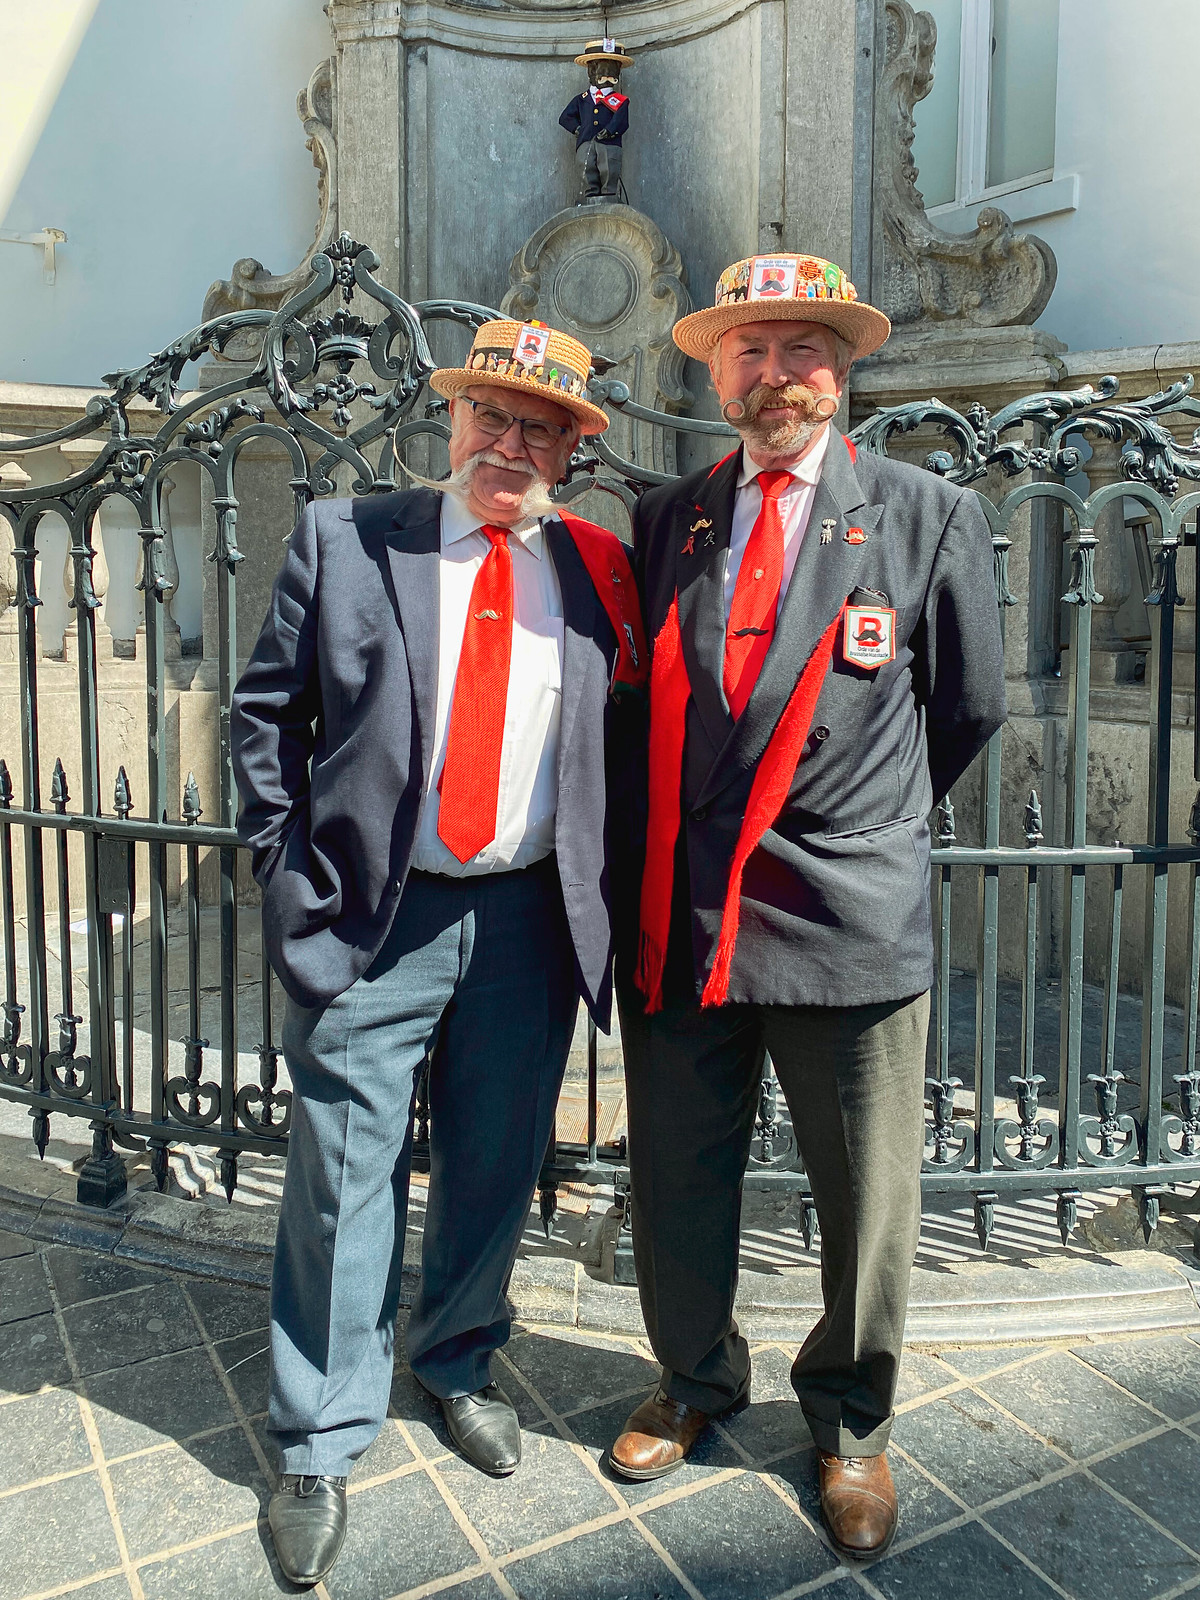 The Men of the Order of the Brussels Moustache